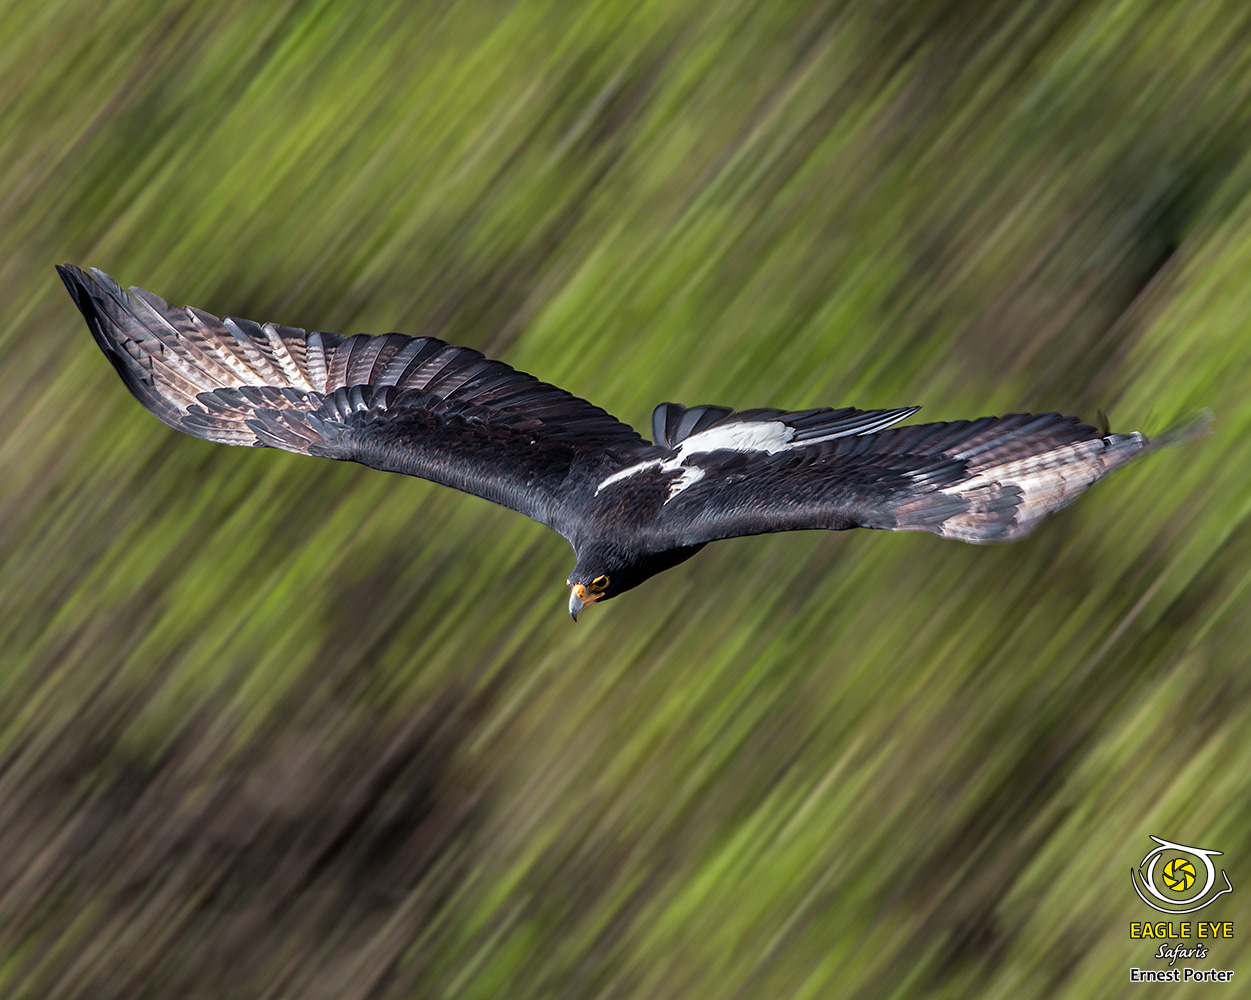 Emoyeni with a Slow Shutter Speed (Verreaux's Eagle)